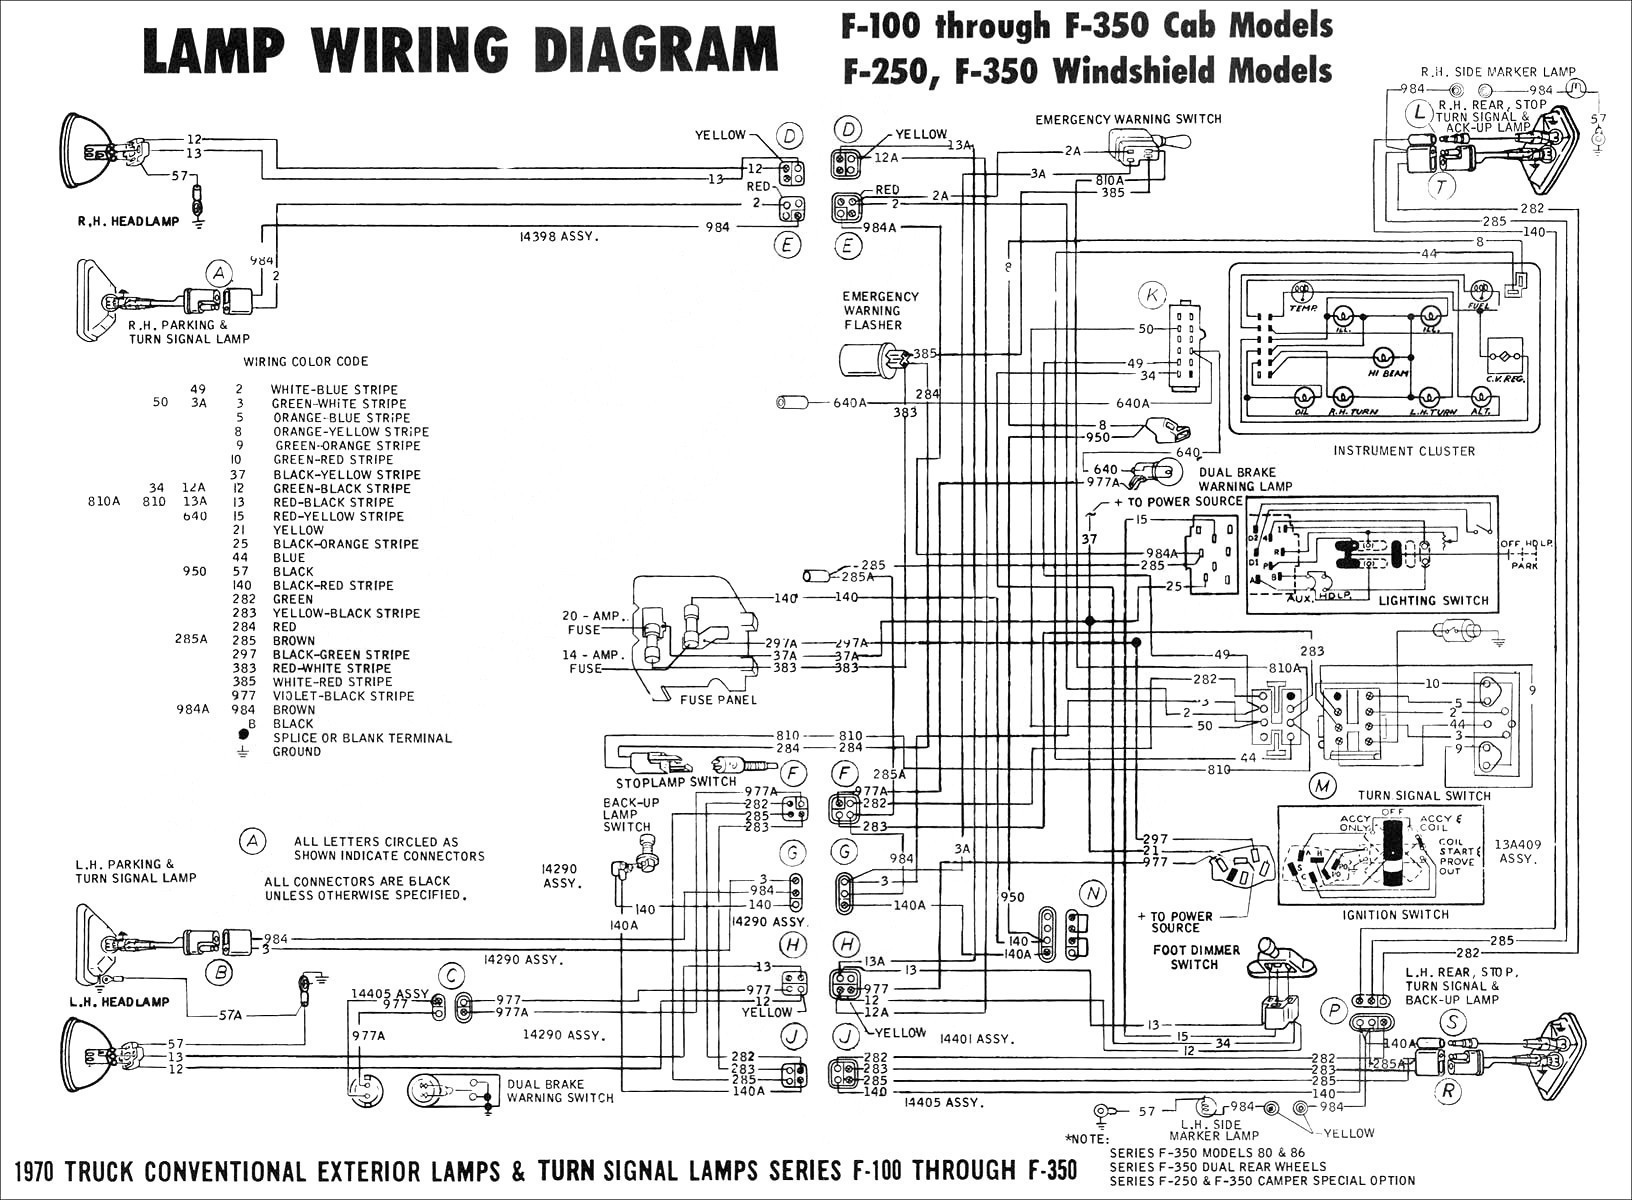 1954 Gm Headlight Switch Wiring Diagram Content Resource Of 1950 Chevy Hyundai Entourage Schematics Rh Parntesis Co